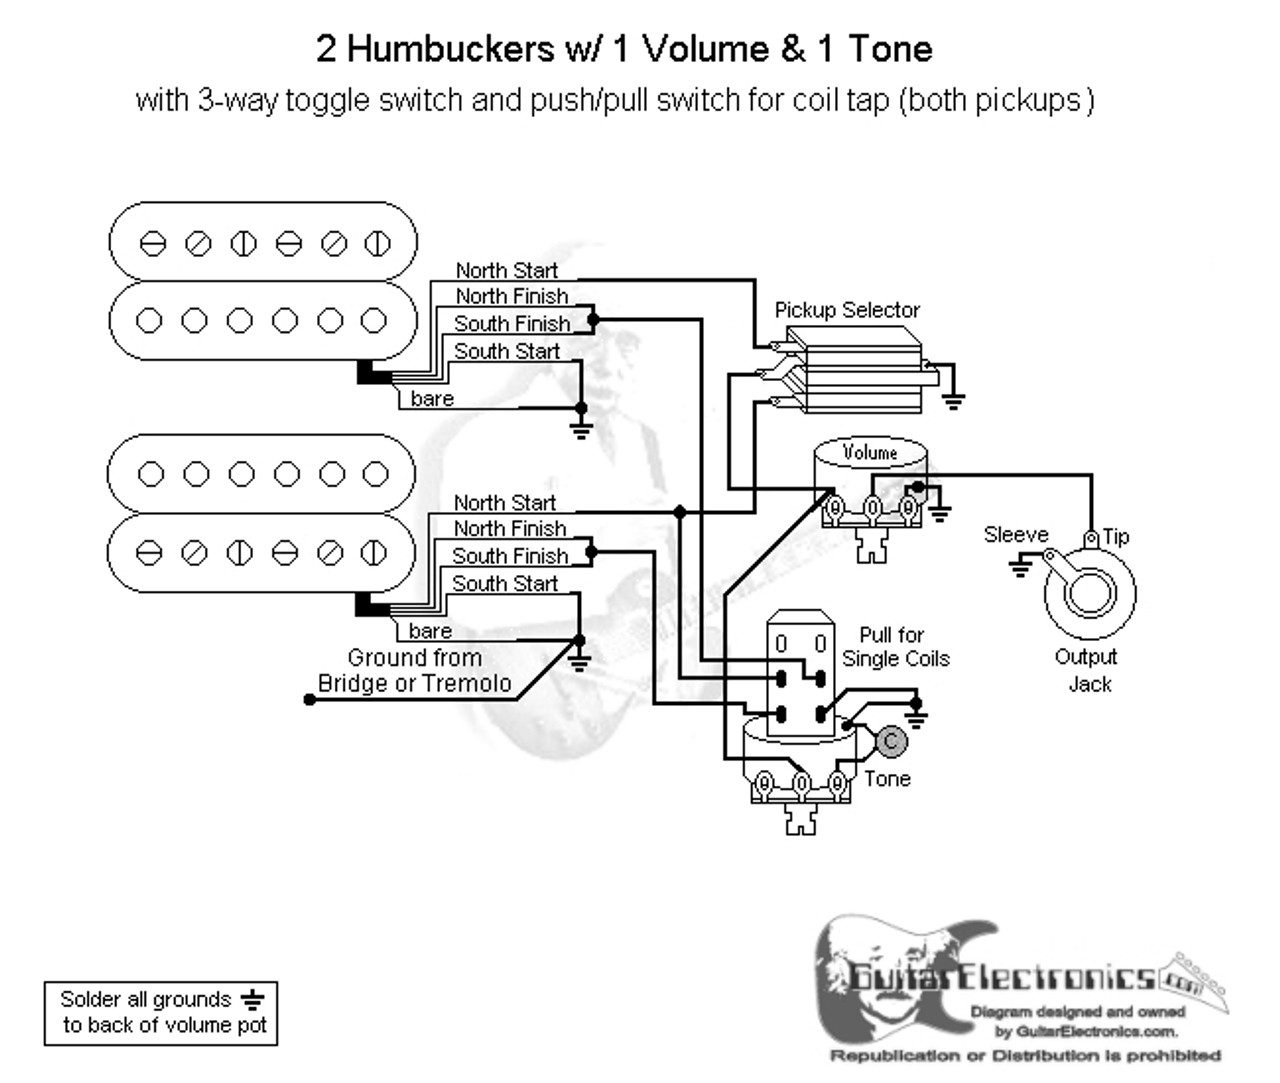 hight resolution of 2 humbuckers 3 way toggle switch 1 volume 1 tone coil tap model wiring diagram wd2hh3t11 01 45715